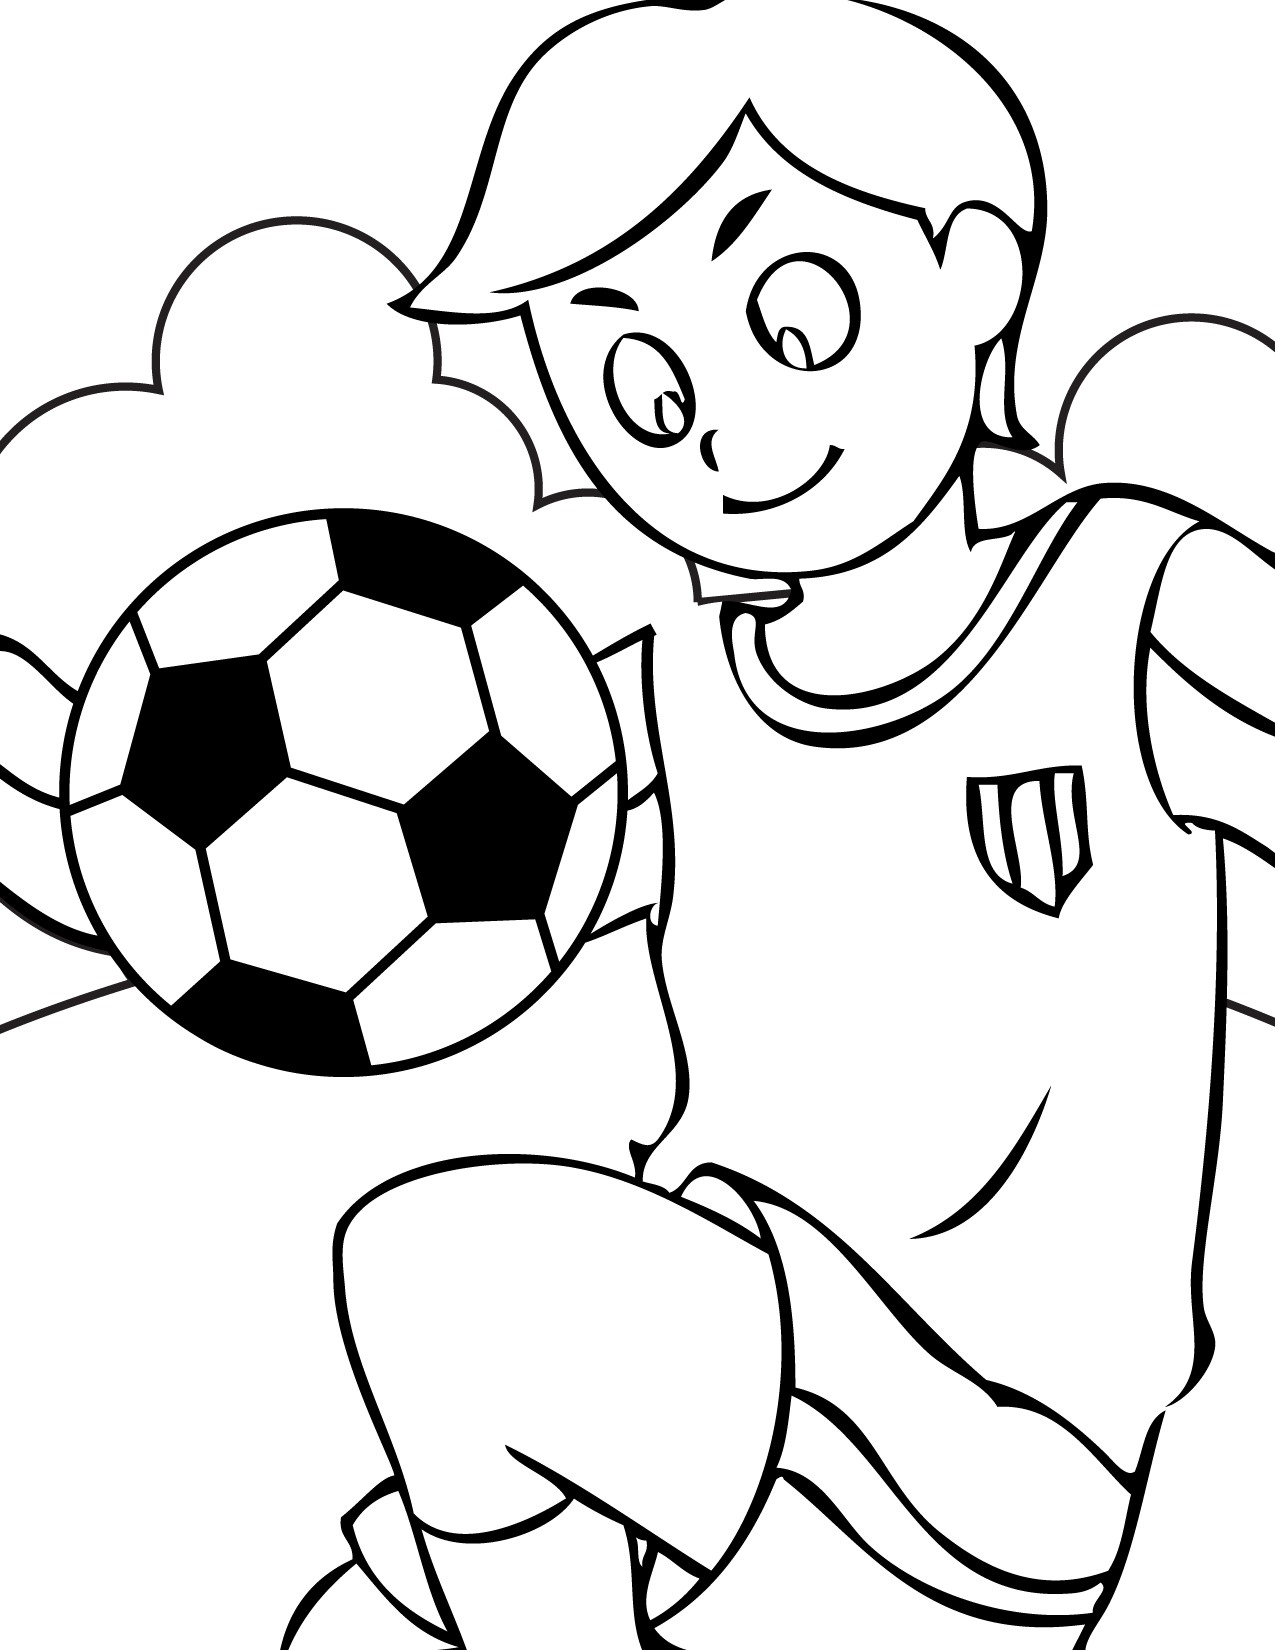 image relating to Soccer Ball Printable named Football Ball Drawing Template at  Free of charge for